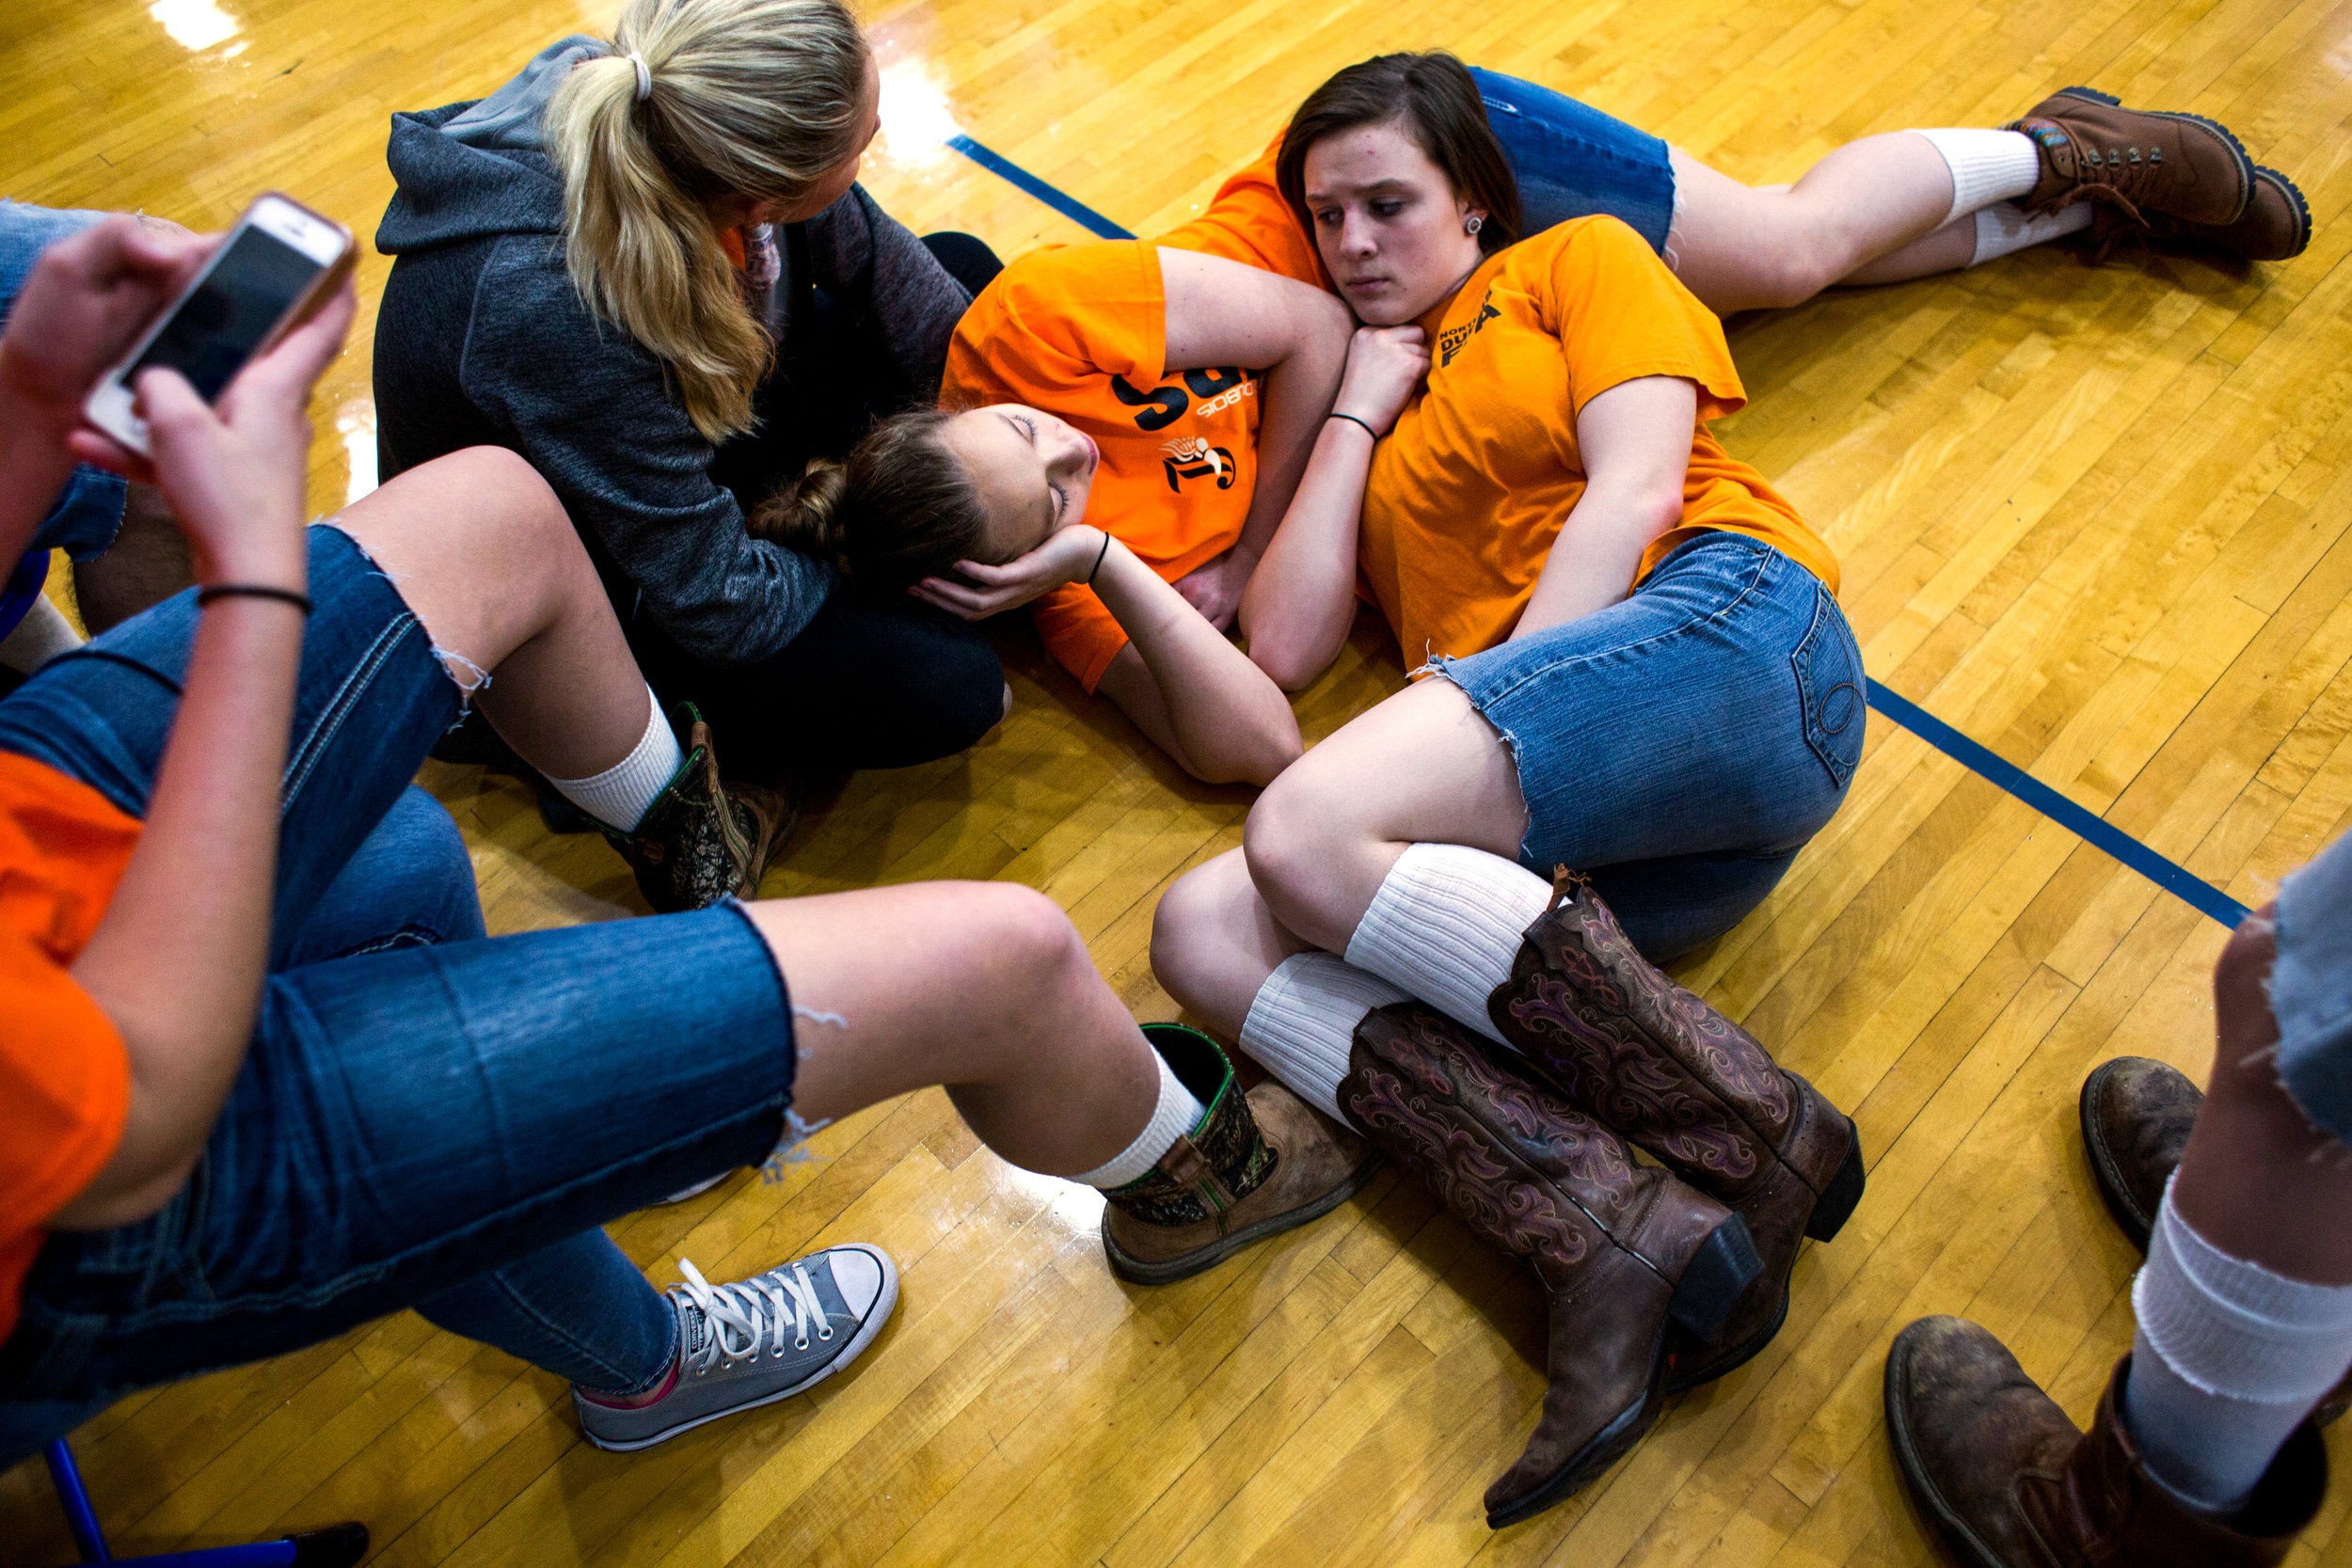 "Northeast Dubois freshman MaKena Everman, right, laid on top of freshman Fantasy Wright after lunch Thursday. As a way of remembering classmate Chad Knies who was killed recently in a car accident, the students wore orange shirts that match the color of his favorite tractor, cut-off jean shorts and high, white socks with boots or black tennis shoes which the students said he would always wear. ""He was just a really outgoing person,"" Everman said. ""Being such a small school...when you take one of us out, it takes us all out. We were all affected by what happened because he was so close to most people."""